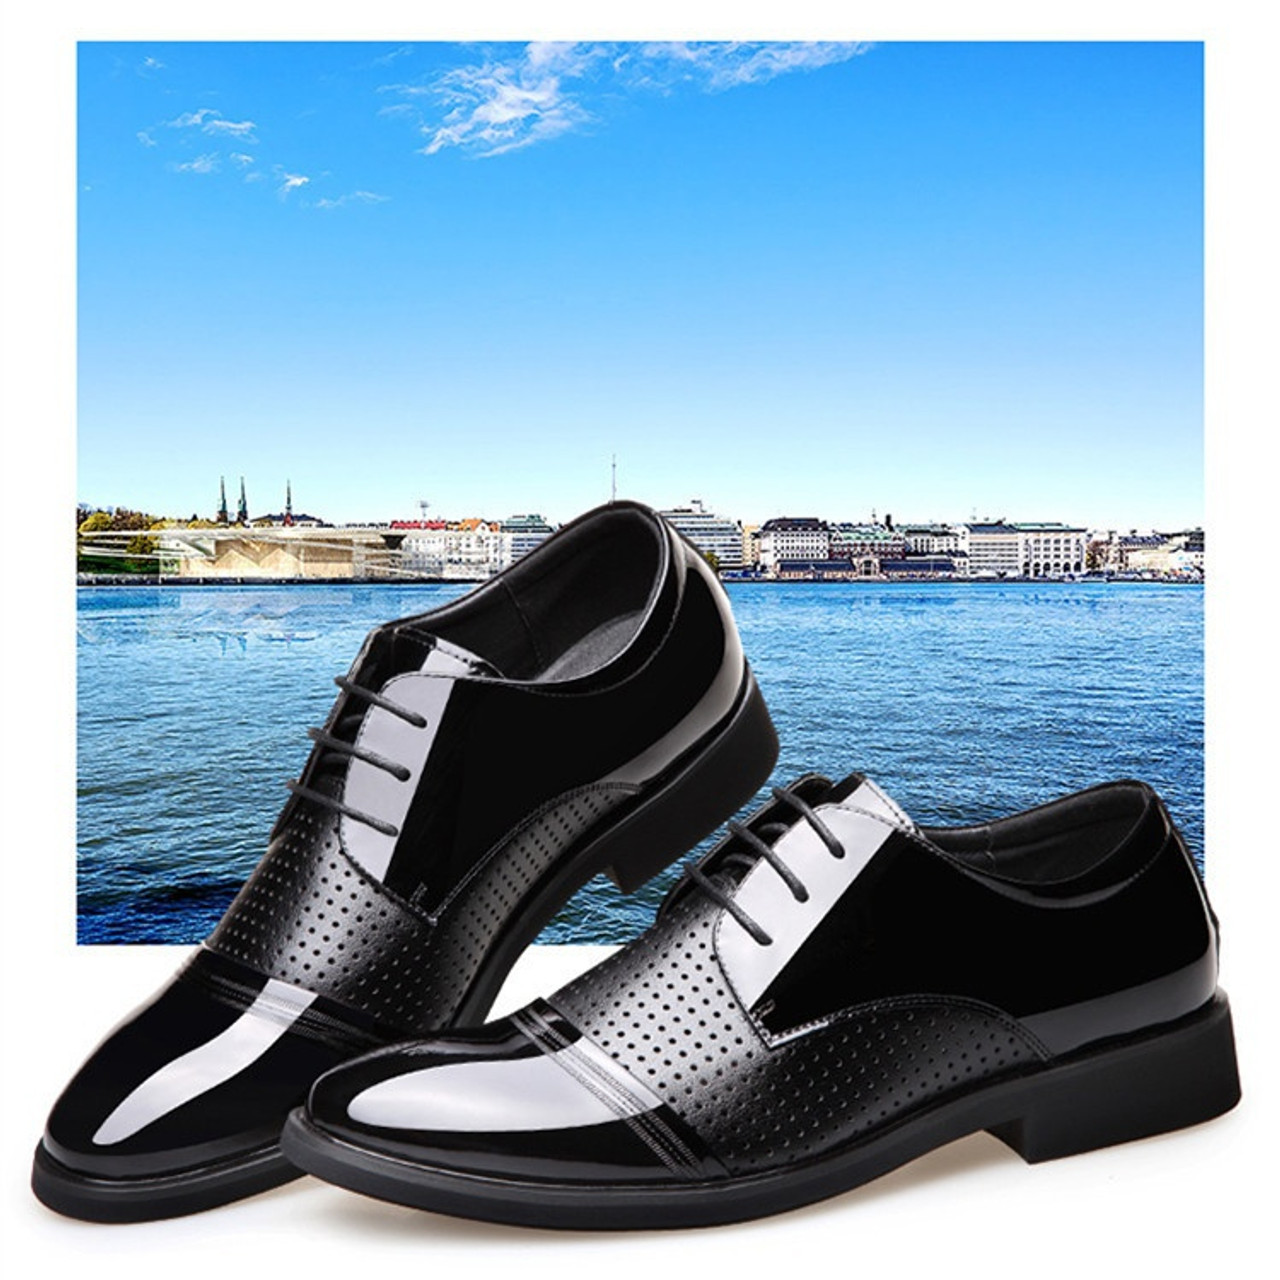 378307a47227 2018 Men's Fashion Luxury Pointed Toe Casual Leather Shoes Mens Lace Up  Business Dress Wedding Office Males Fashion Wedding Shoe